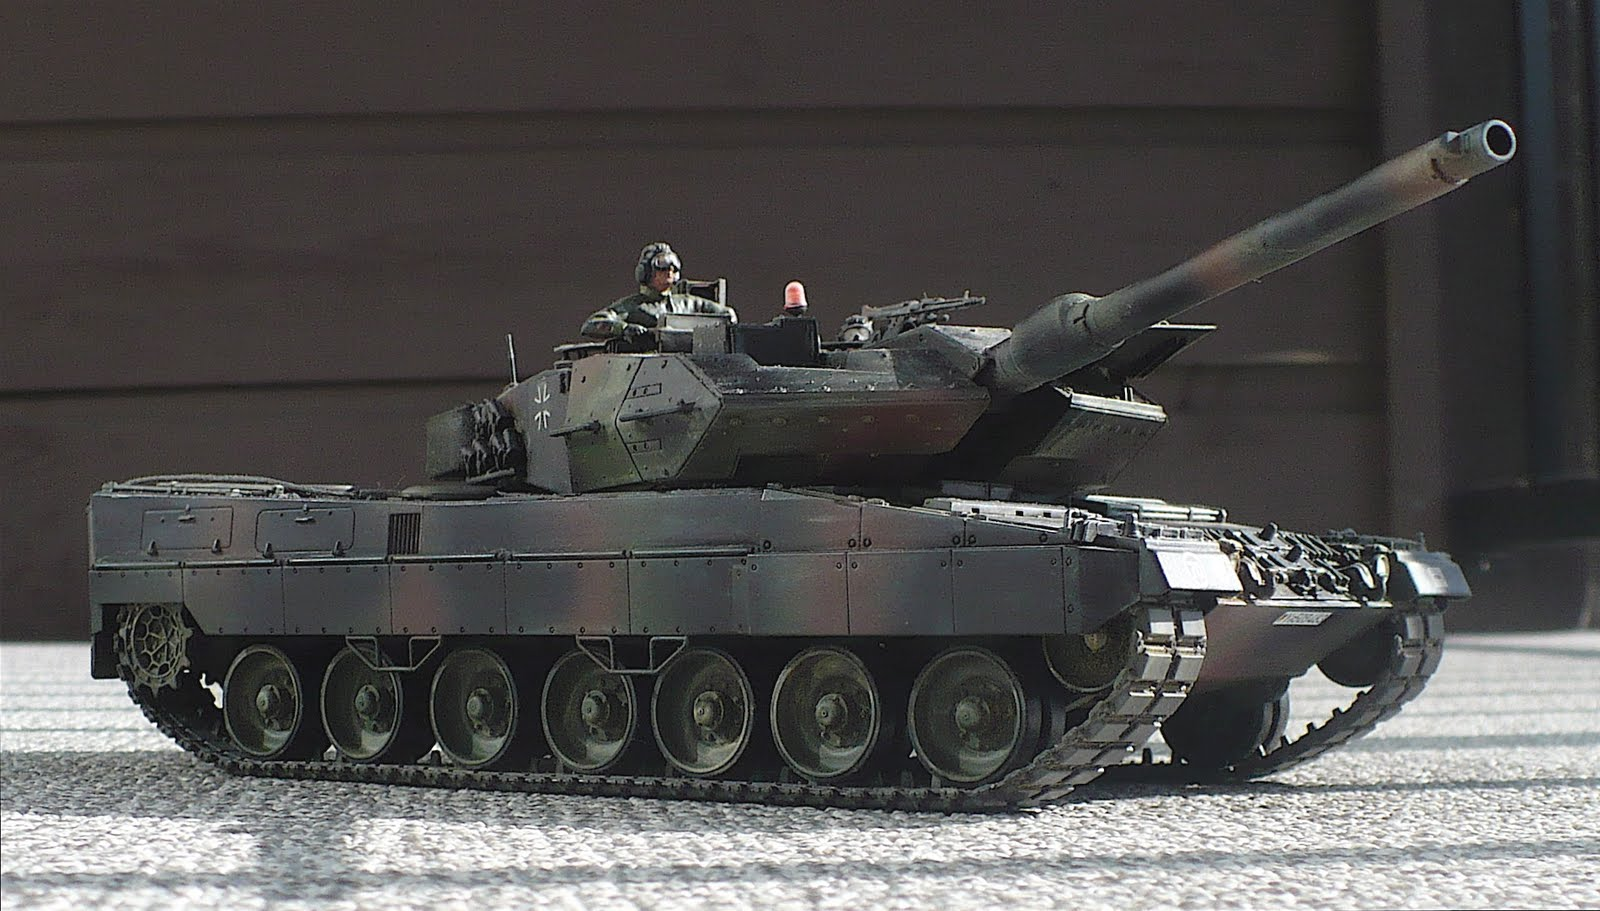 The Great Canadian Model Builders Web Page!: Leopard 2  The Great Canad...